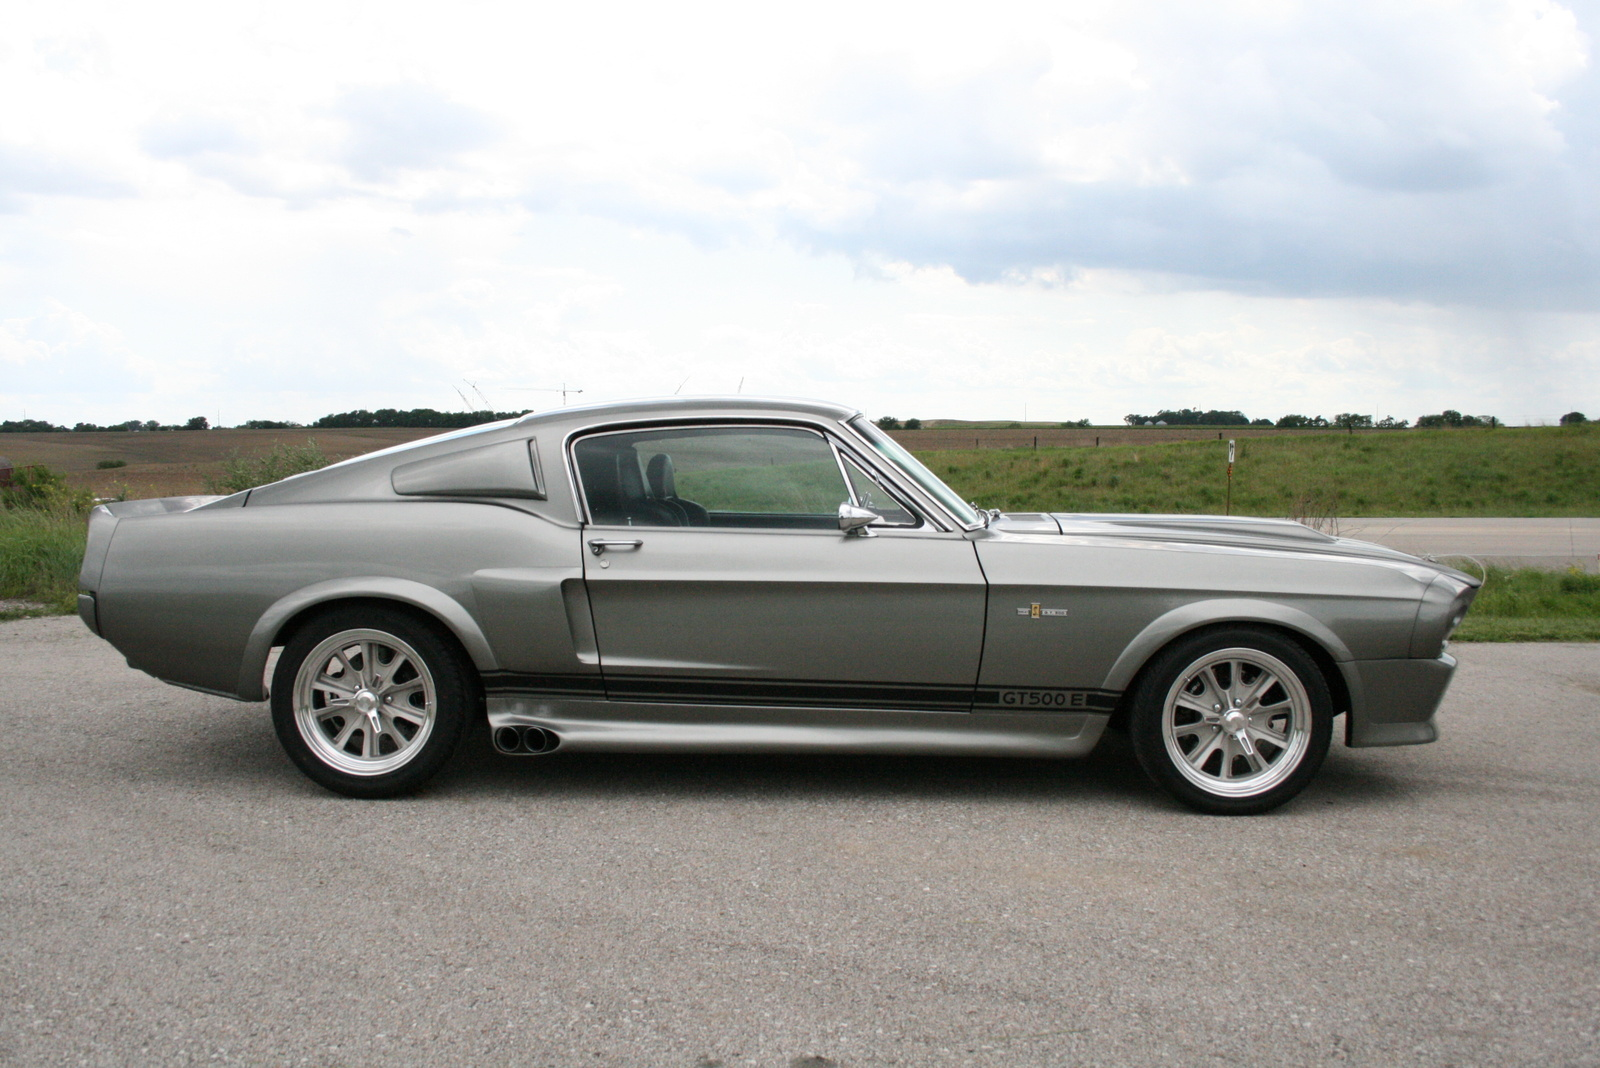 mustang shelby gt500 eleanor 1967 dark cars wallpapers. Black Bedroom Furniture Sets. Home Design Ideas